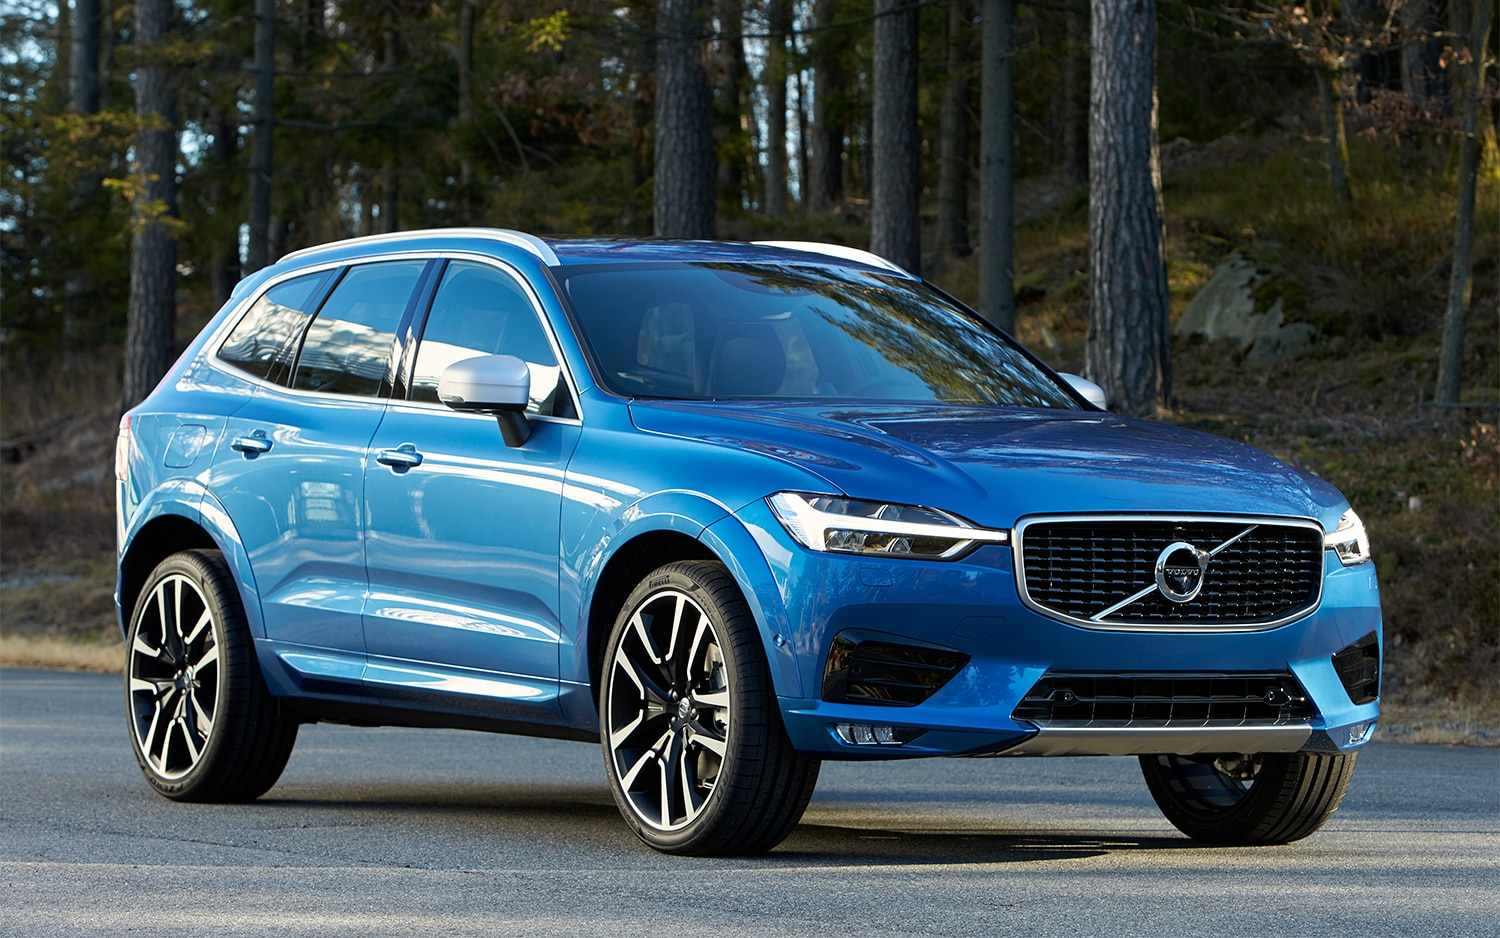 2018 Volvo XC60 T6 Inscription Front Three Quarter 04 15